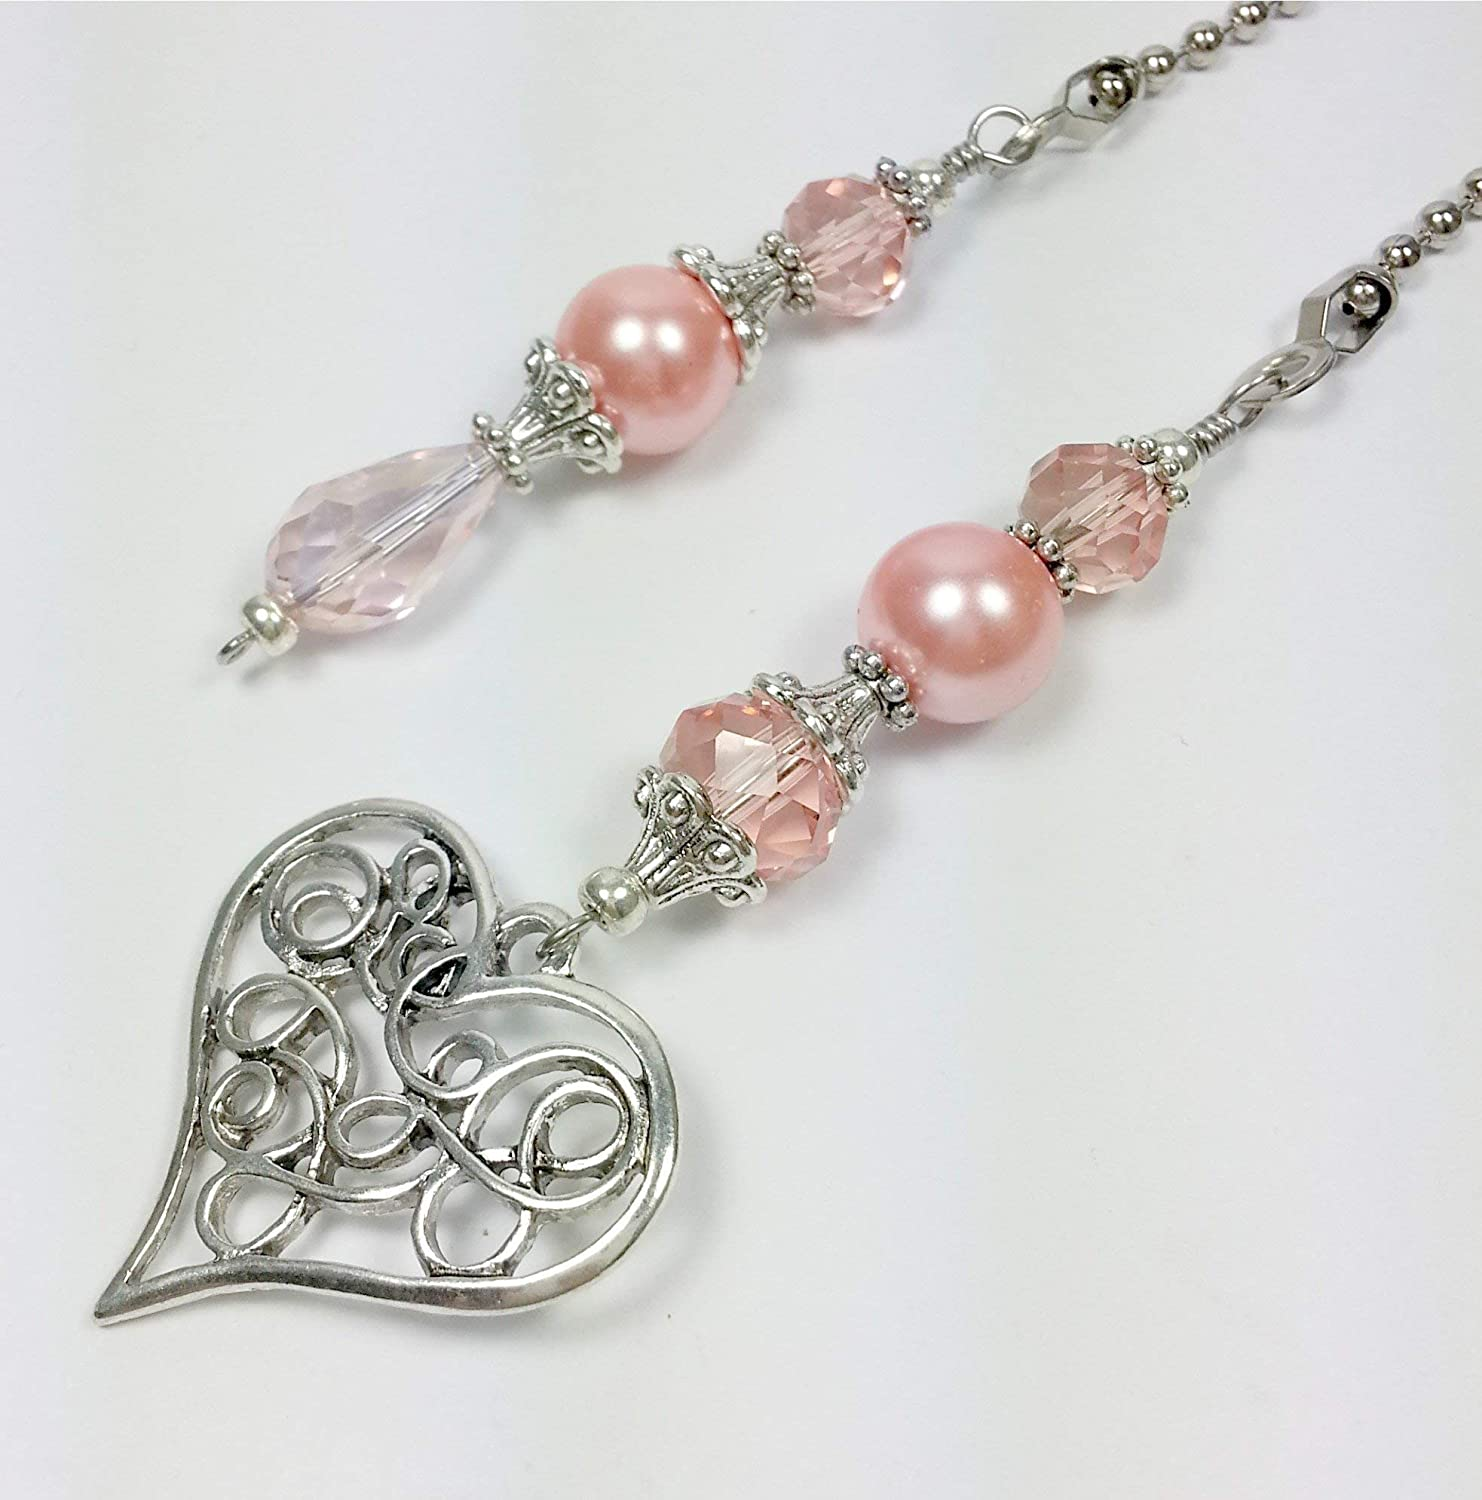 Ceiling Fan and Light Pull Set with Heart Charm - Pink